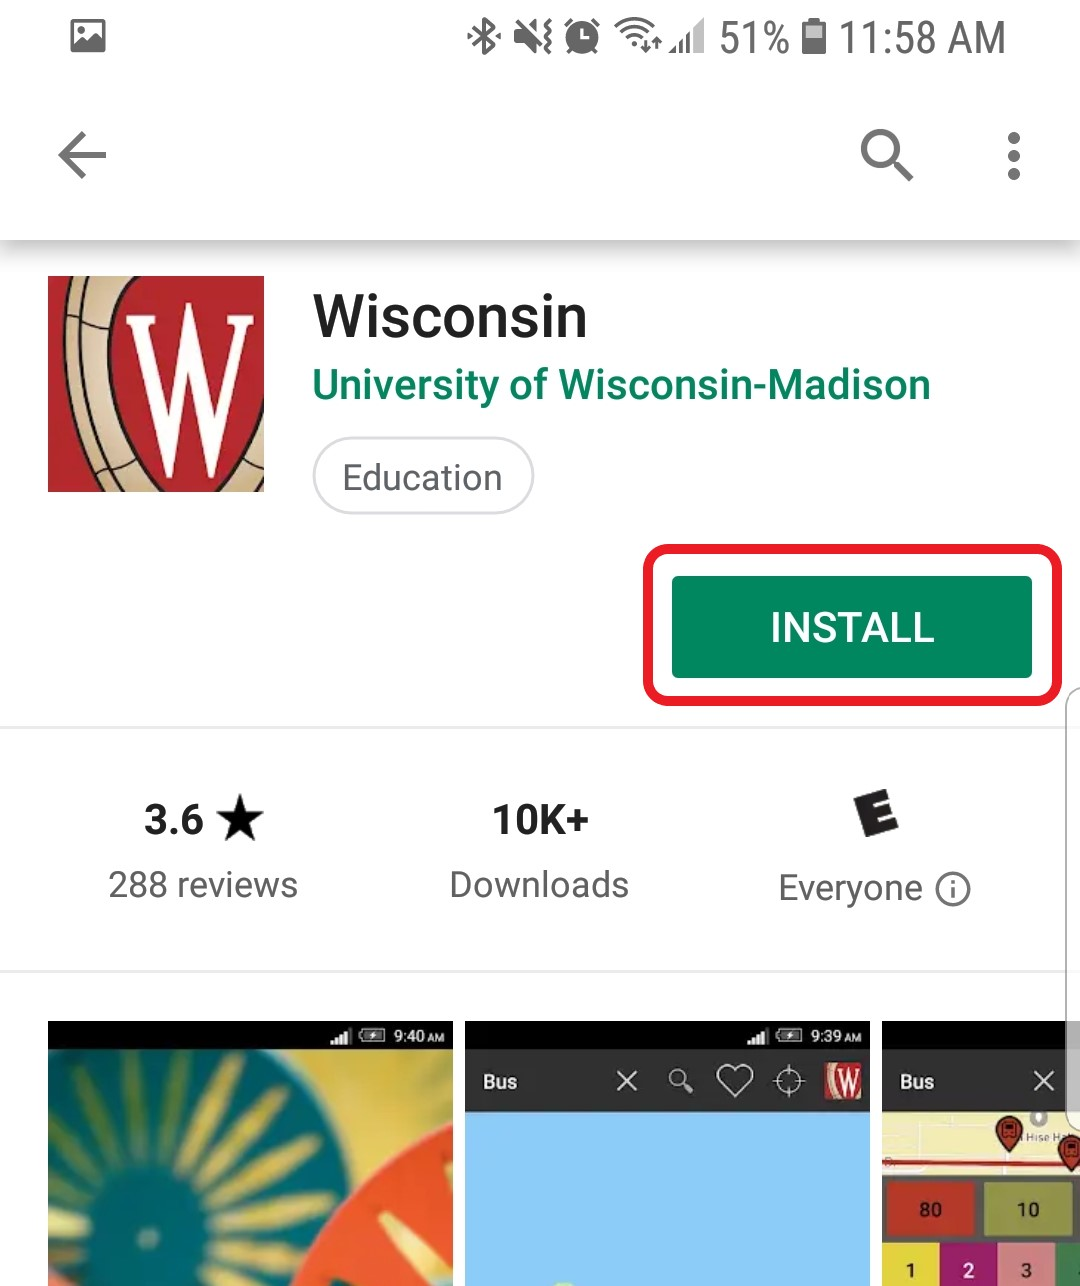 The application details for Wisconsin App are displayed